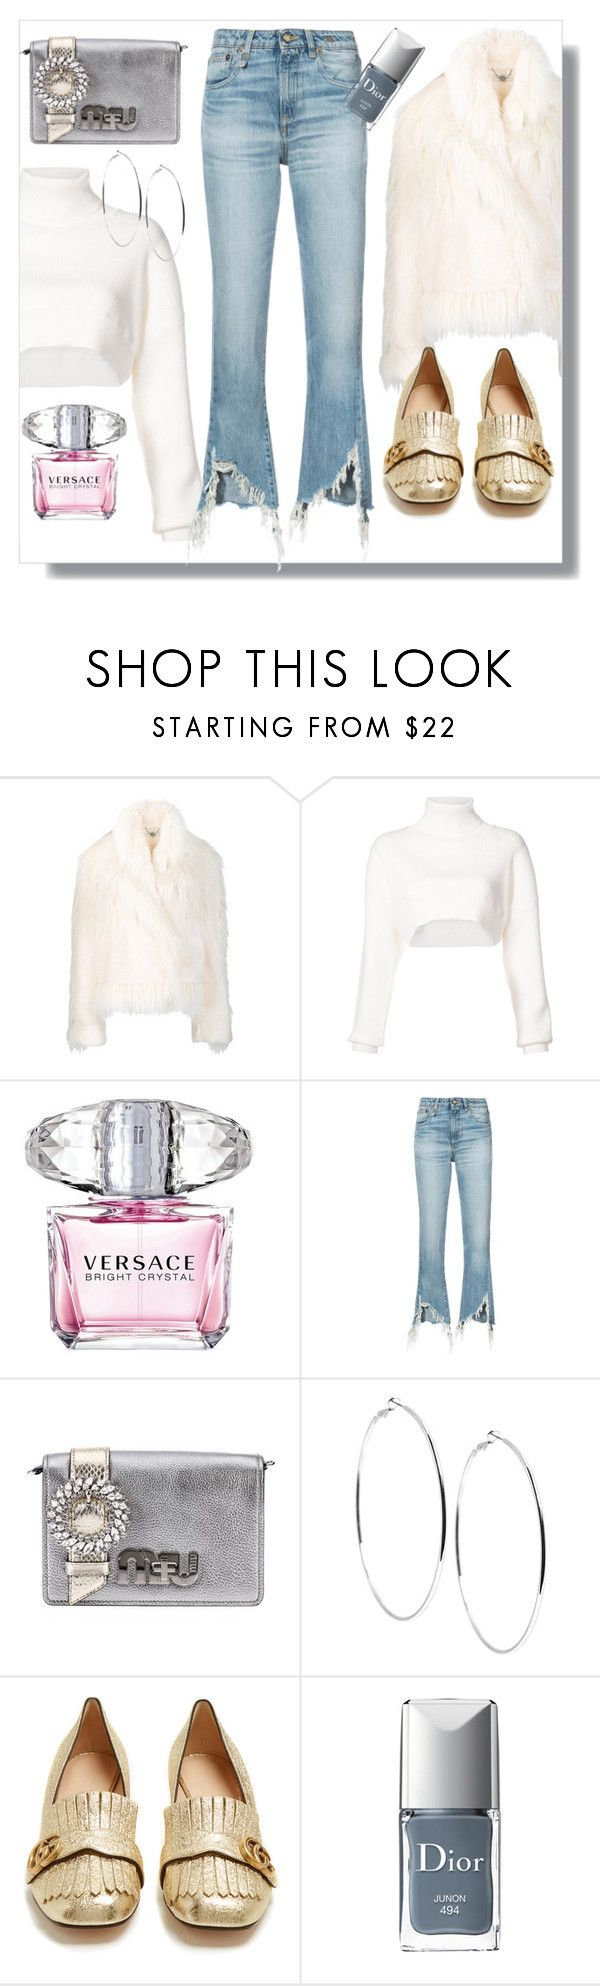 """""""Shimmy Shimmy: Fringe"""" by lovelysmilejanel ❤ liked on Polyvore featuring STELLA McCARTNEY, Alexandre Vauthier, Versace, R13, Miu Miu, GUESS, Gucci, Christian Dior and fringe"""